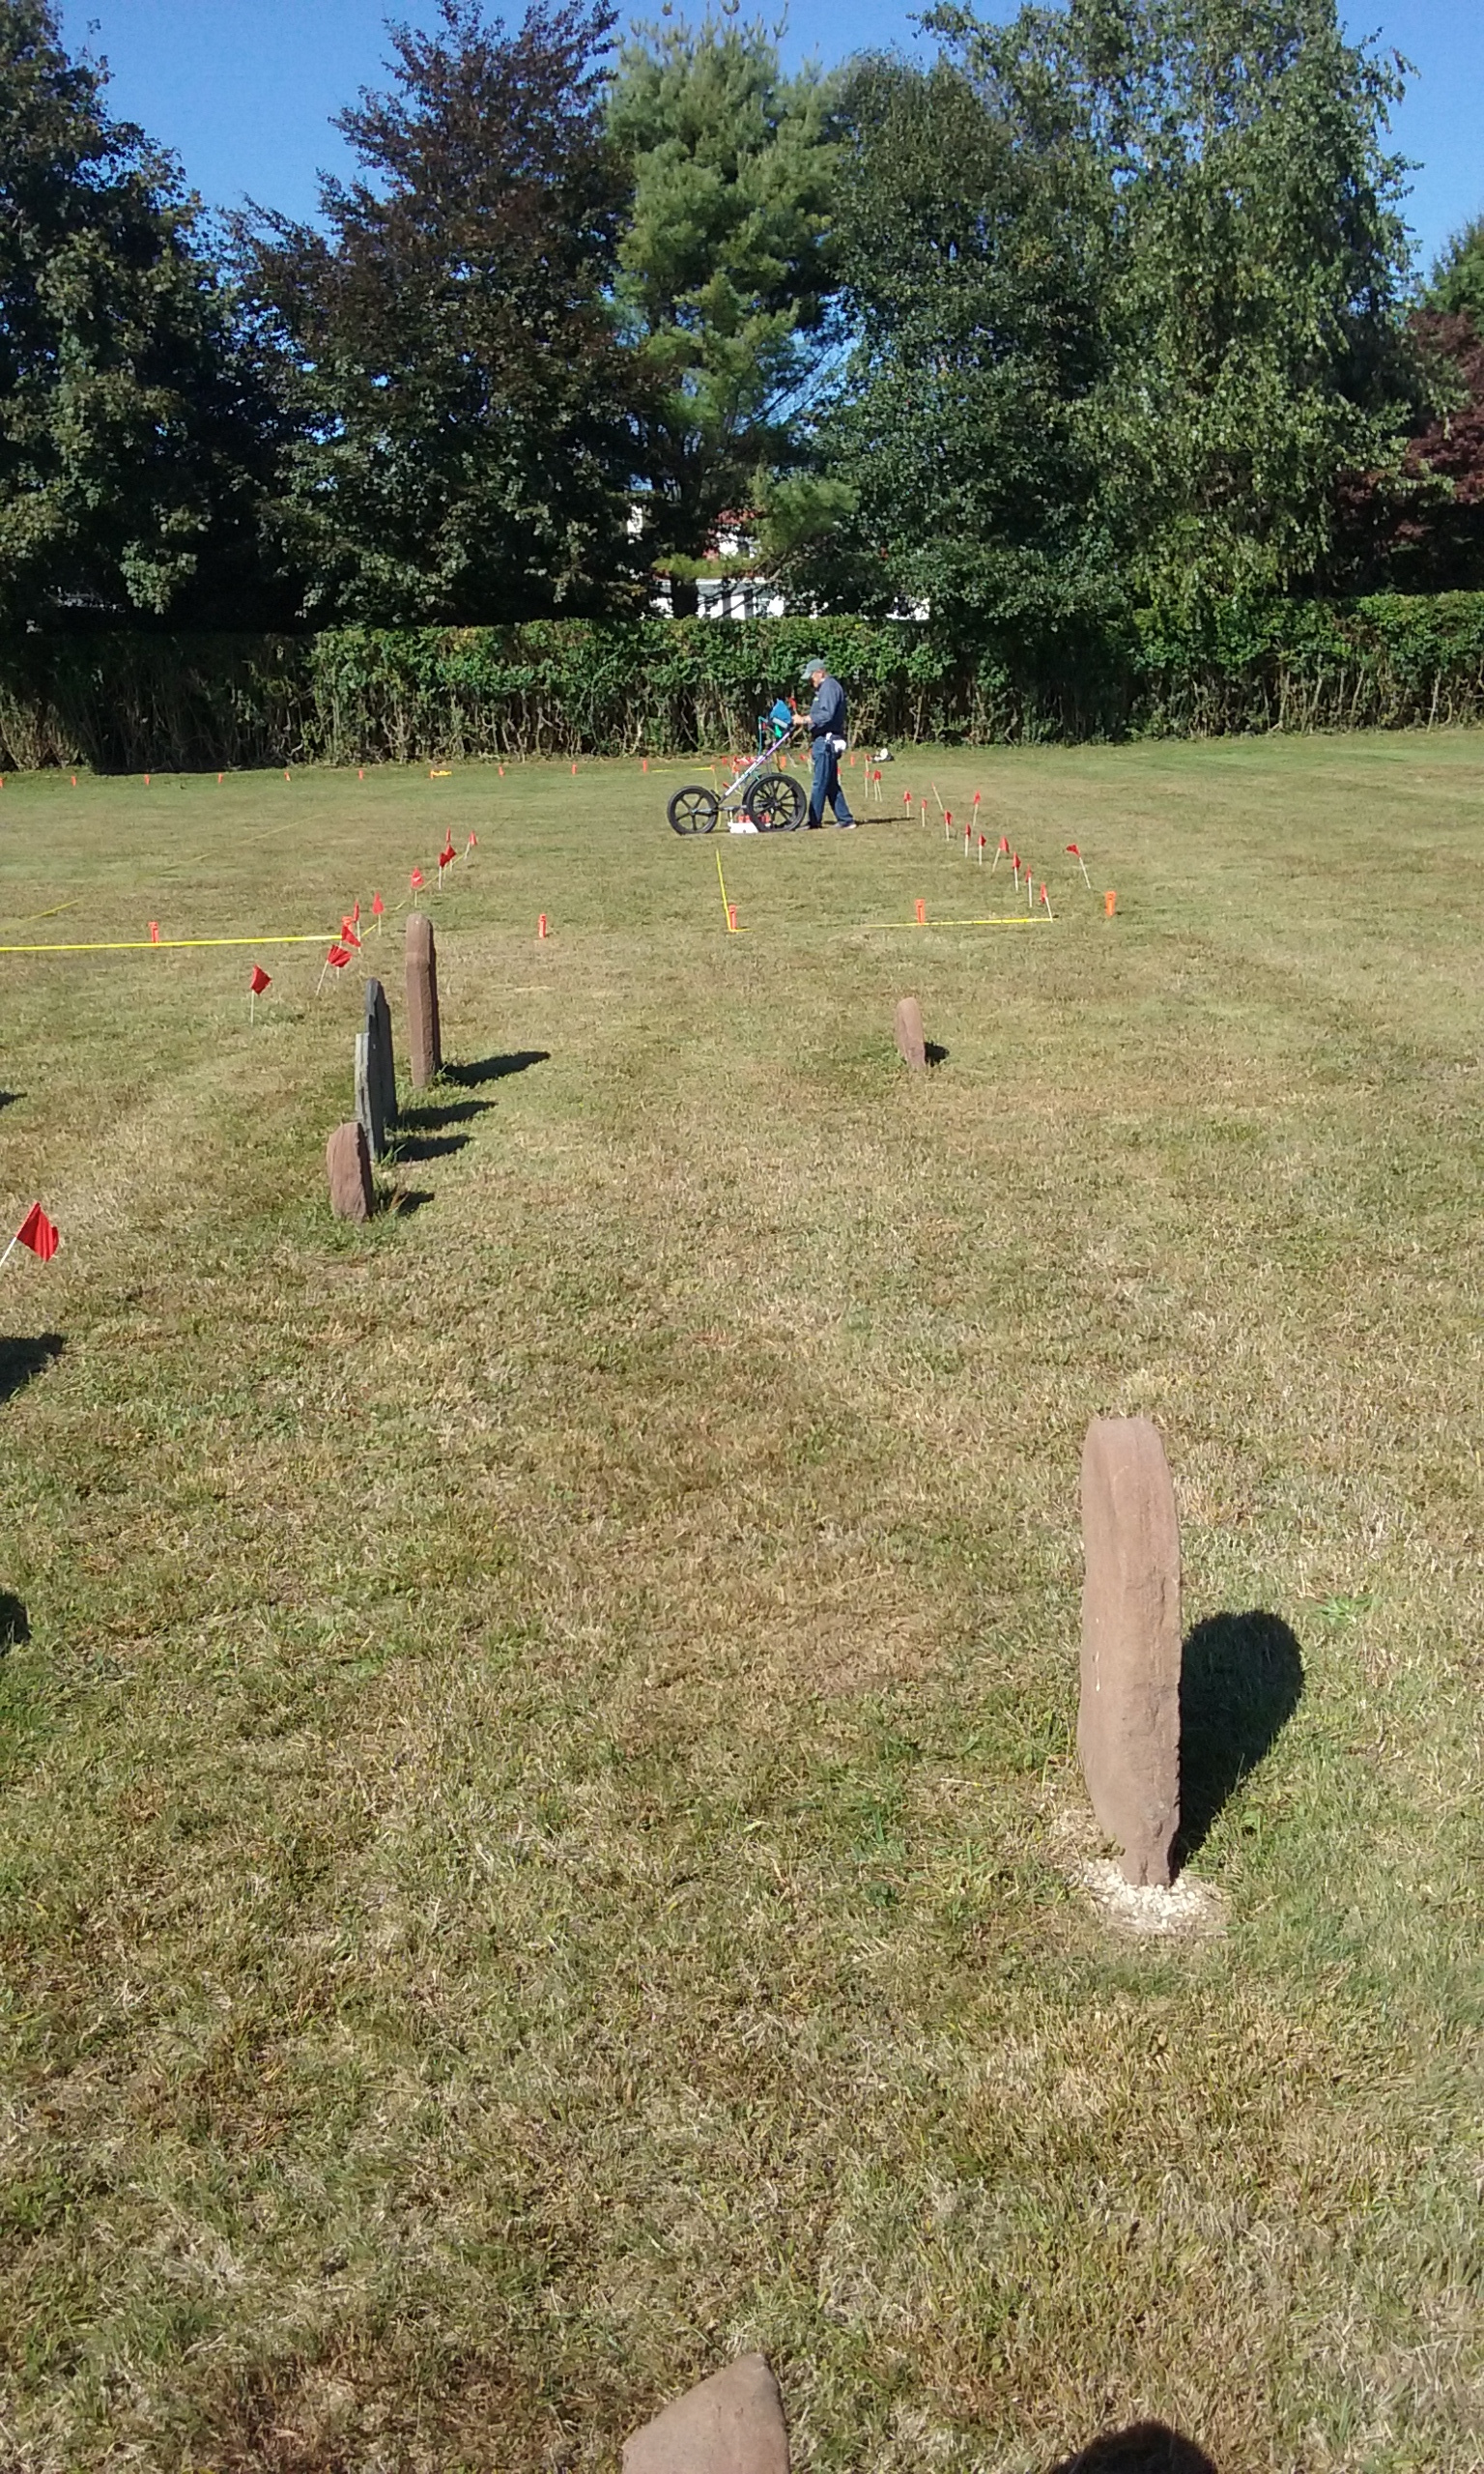 GPR with old gravestones